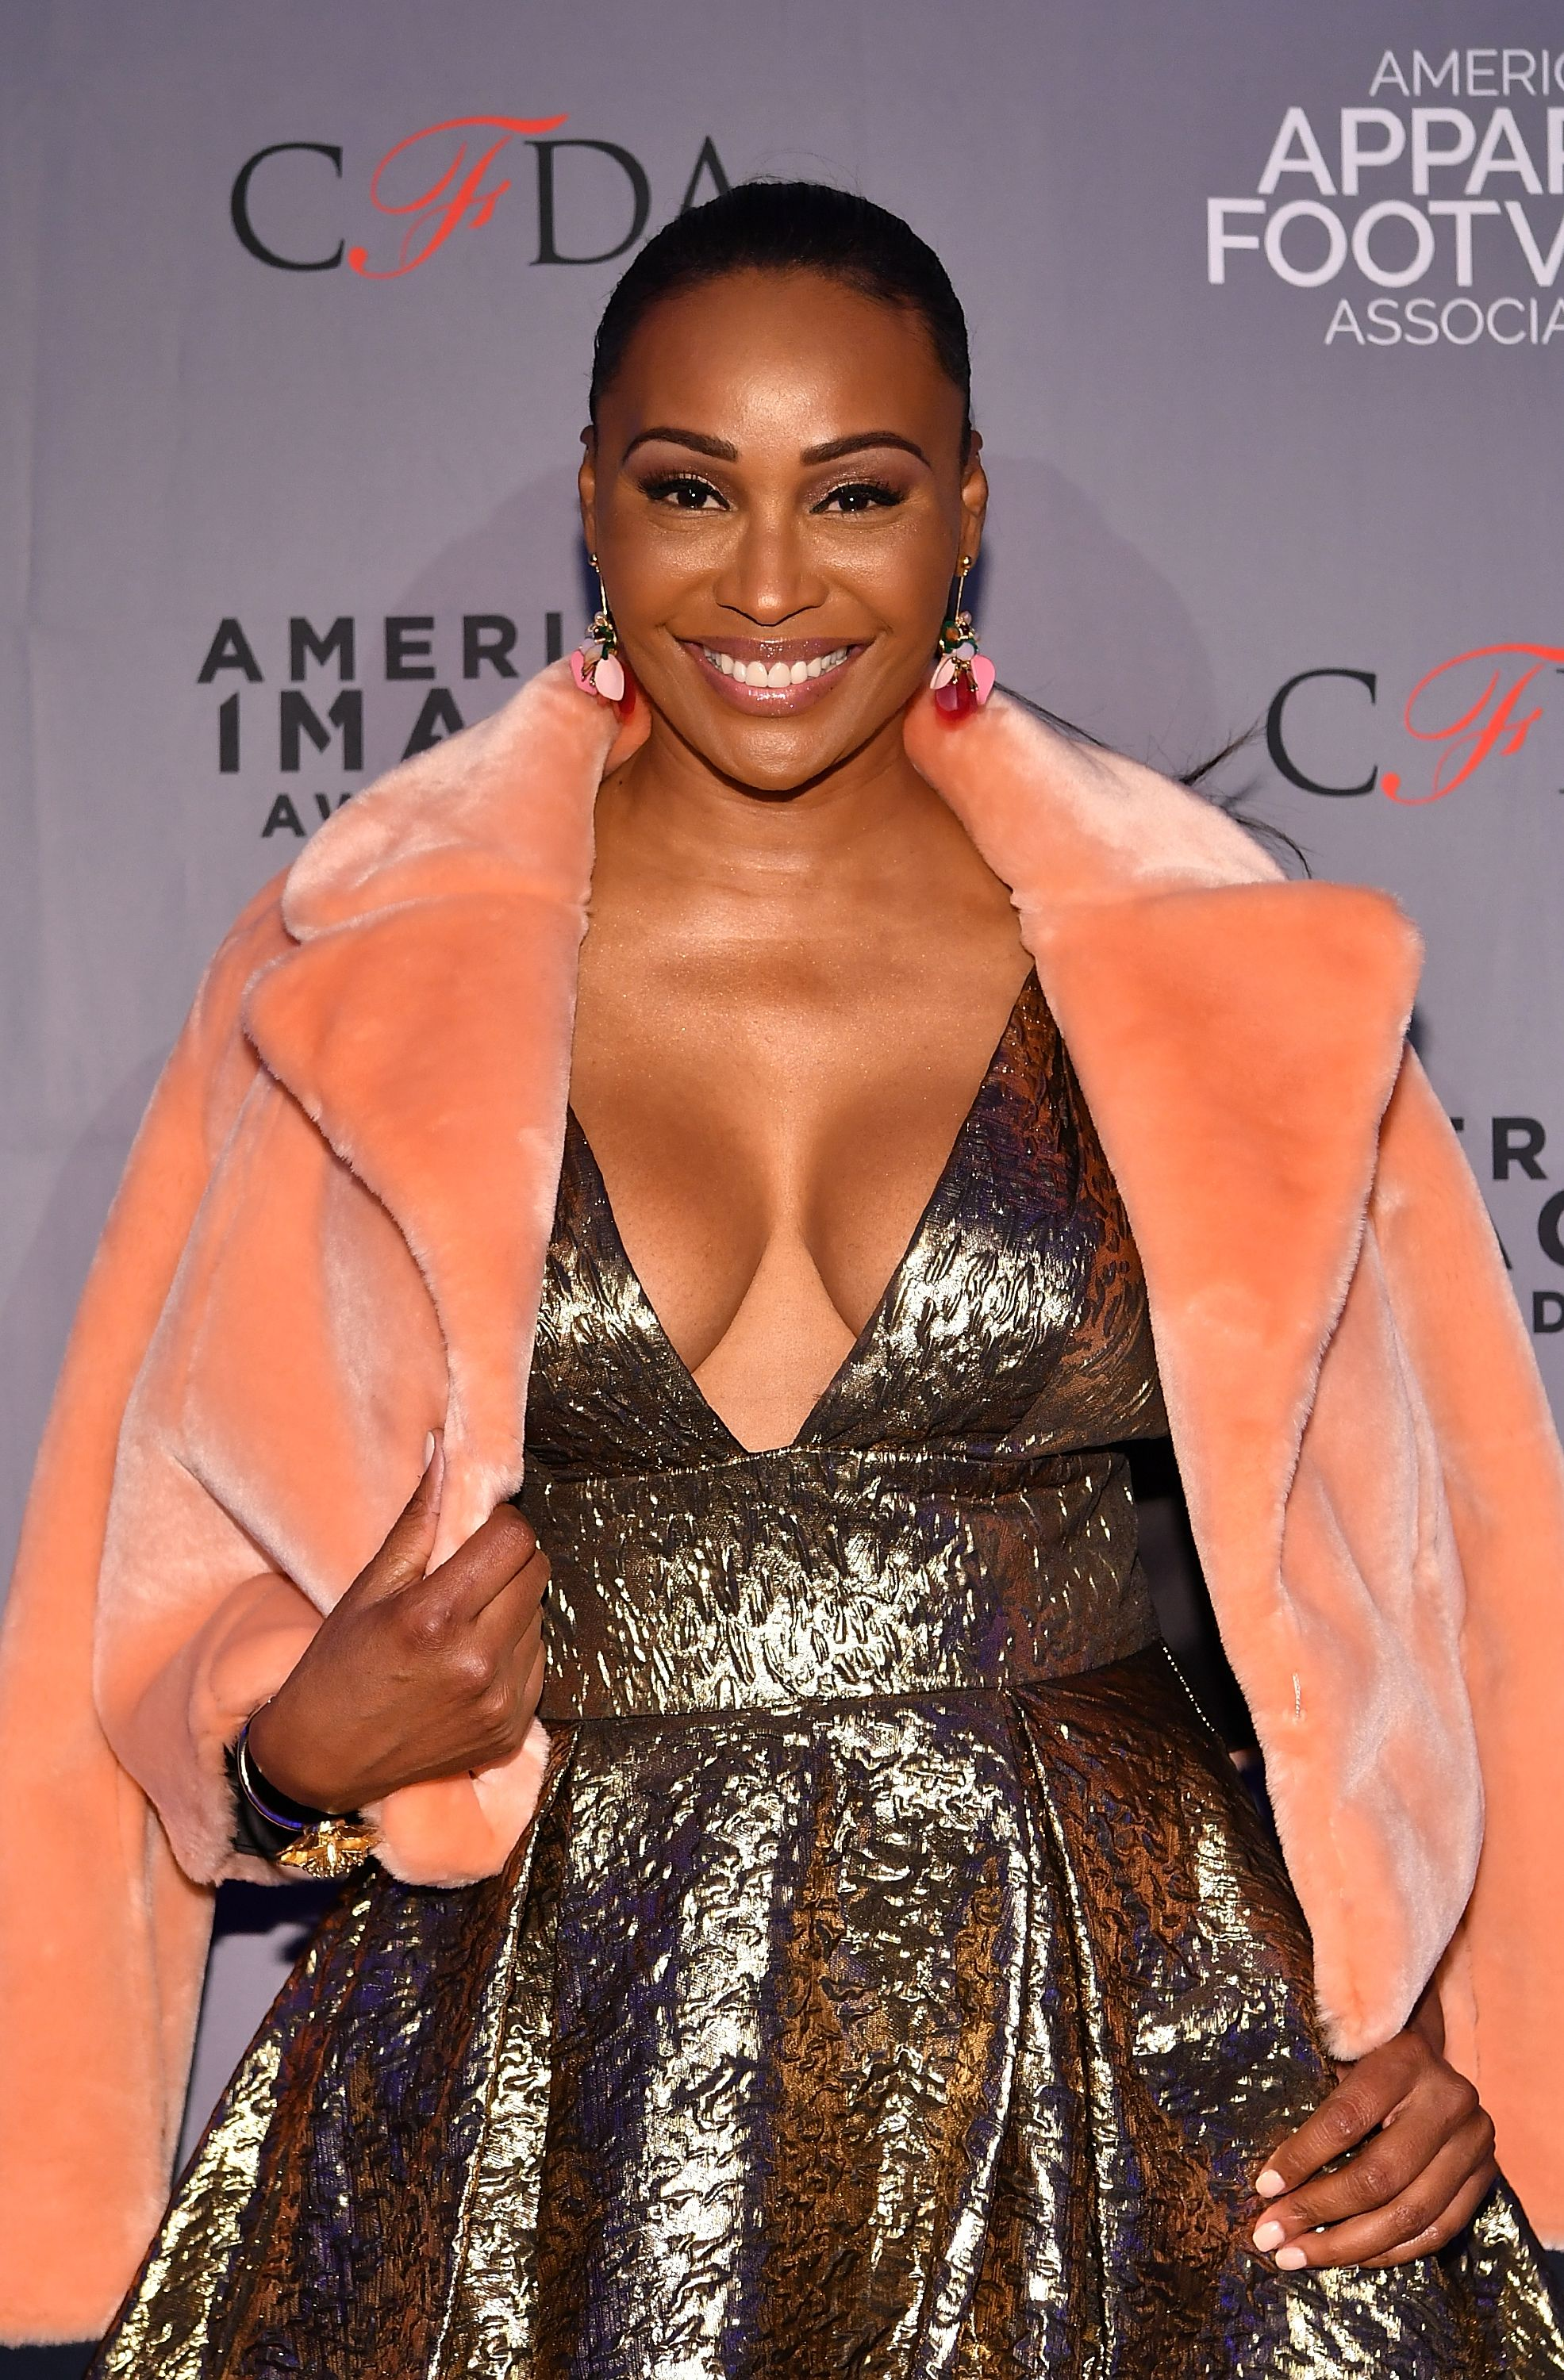 Cynthia Bailey attends American Apparel & Footwear Association's 40th Annual American Image Awards 2018 on April 16, 2018 in New York City. | Source: Getty Images